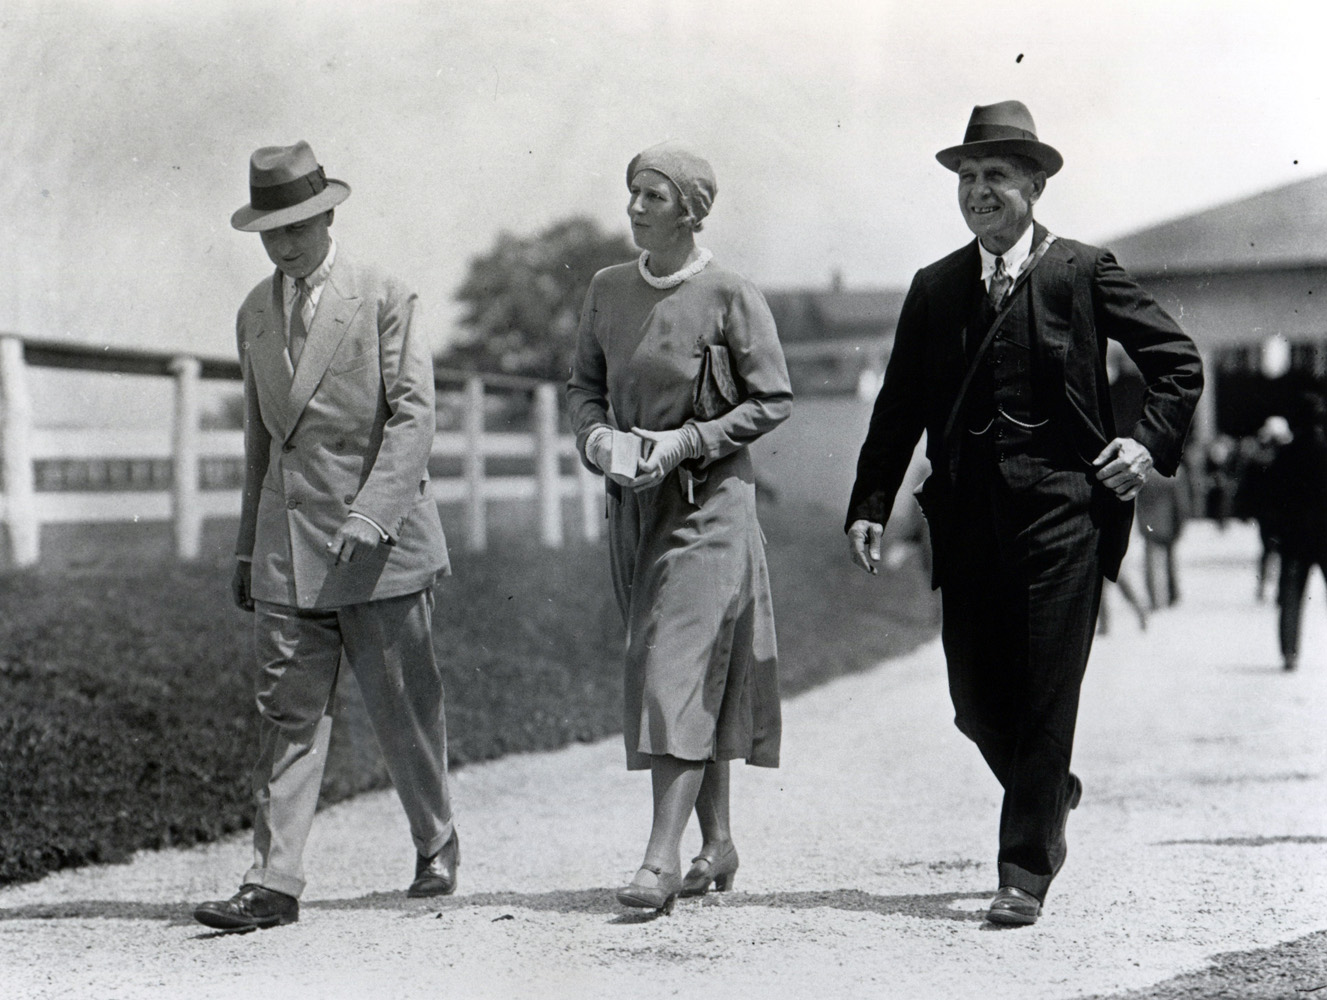 Thomas Hitchcock (on right) walking with an unidentified couple on a farm (Keeneland Library Cook Collection/Museum Collection)